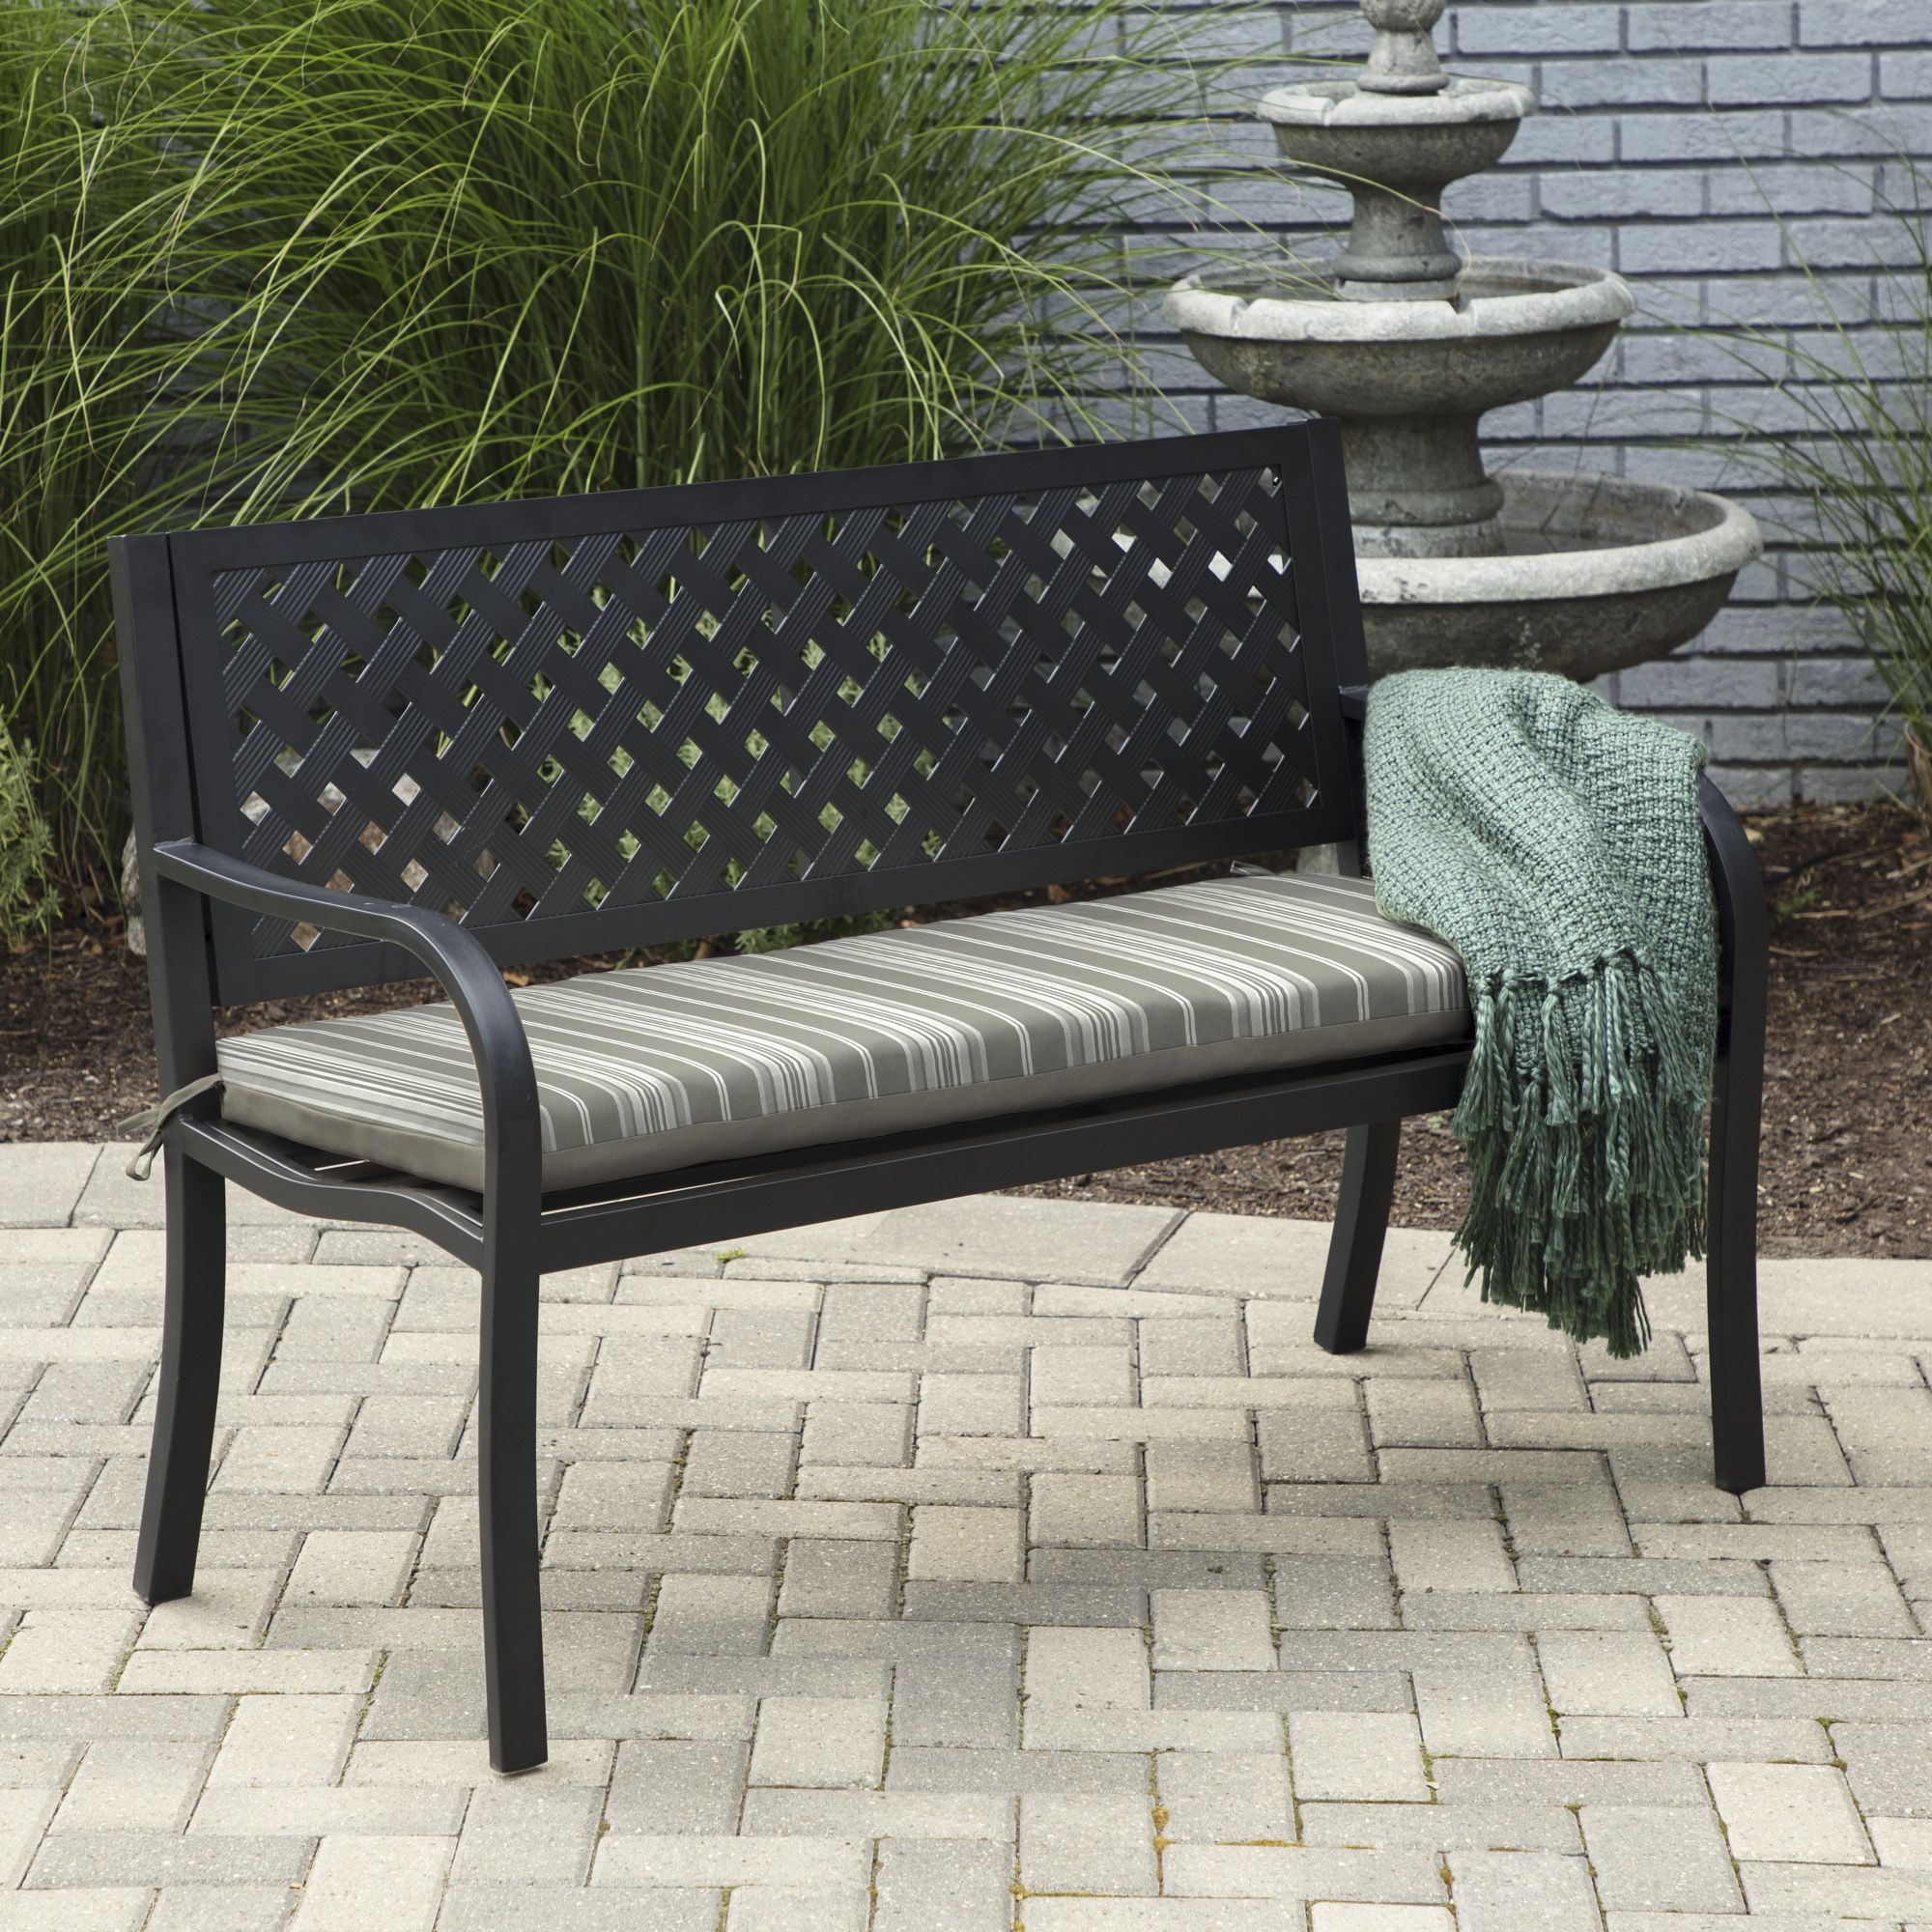 e11206f3cf2460e24a144272be9056a8 - Better Homes And Gardens Outdoor Bench Cushion